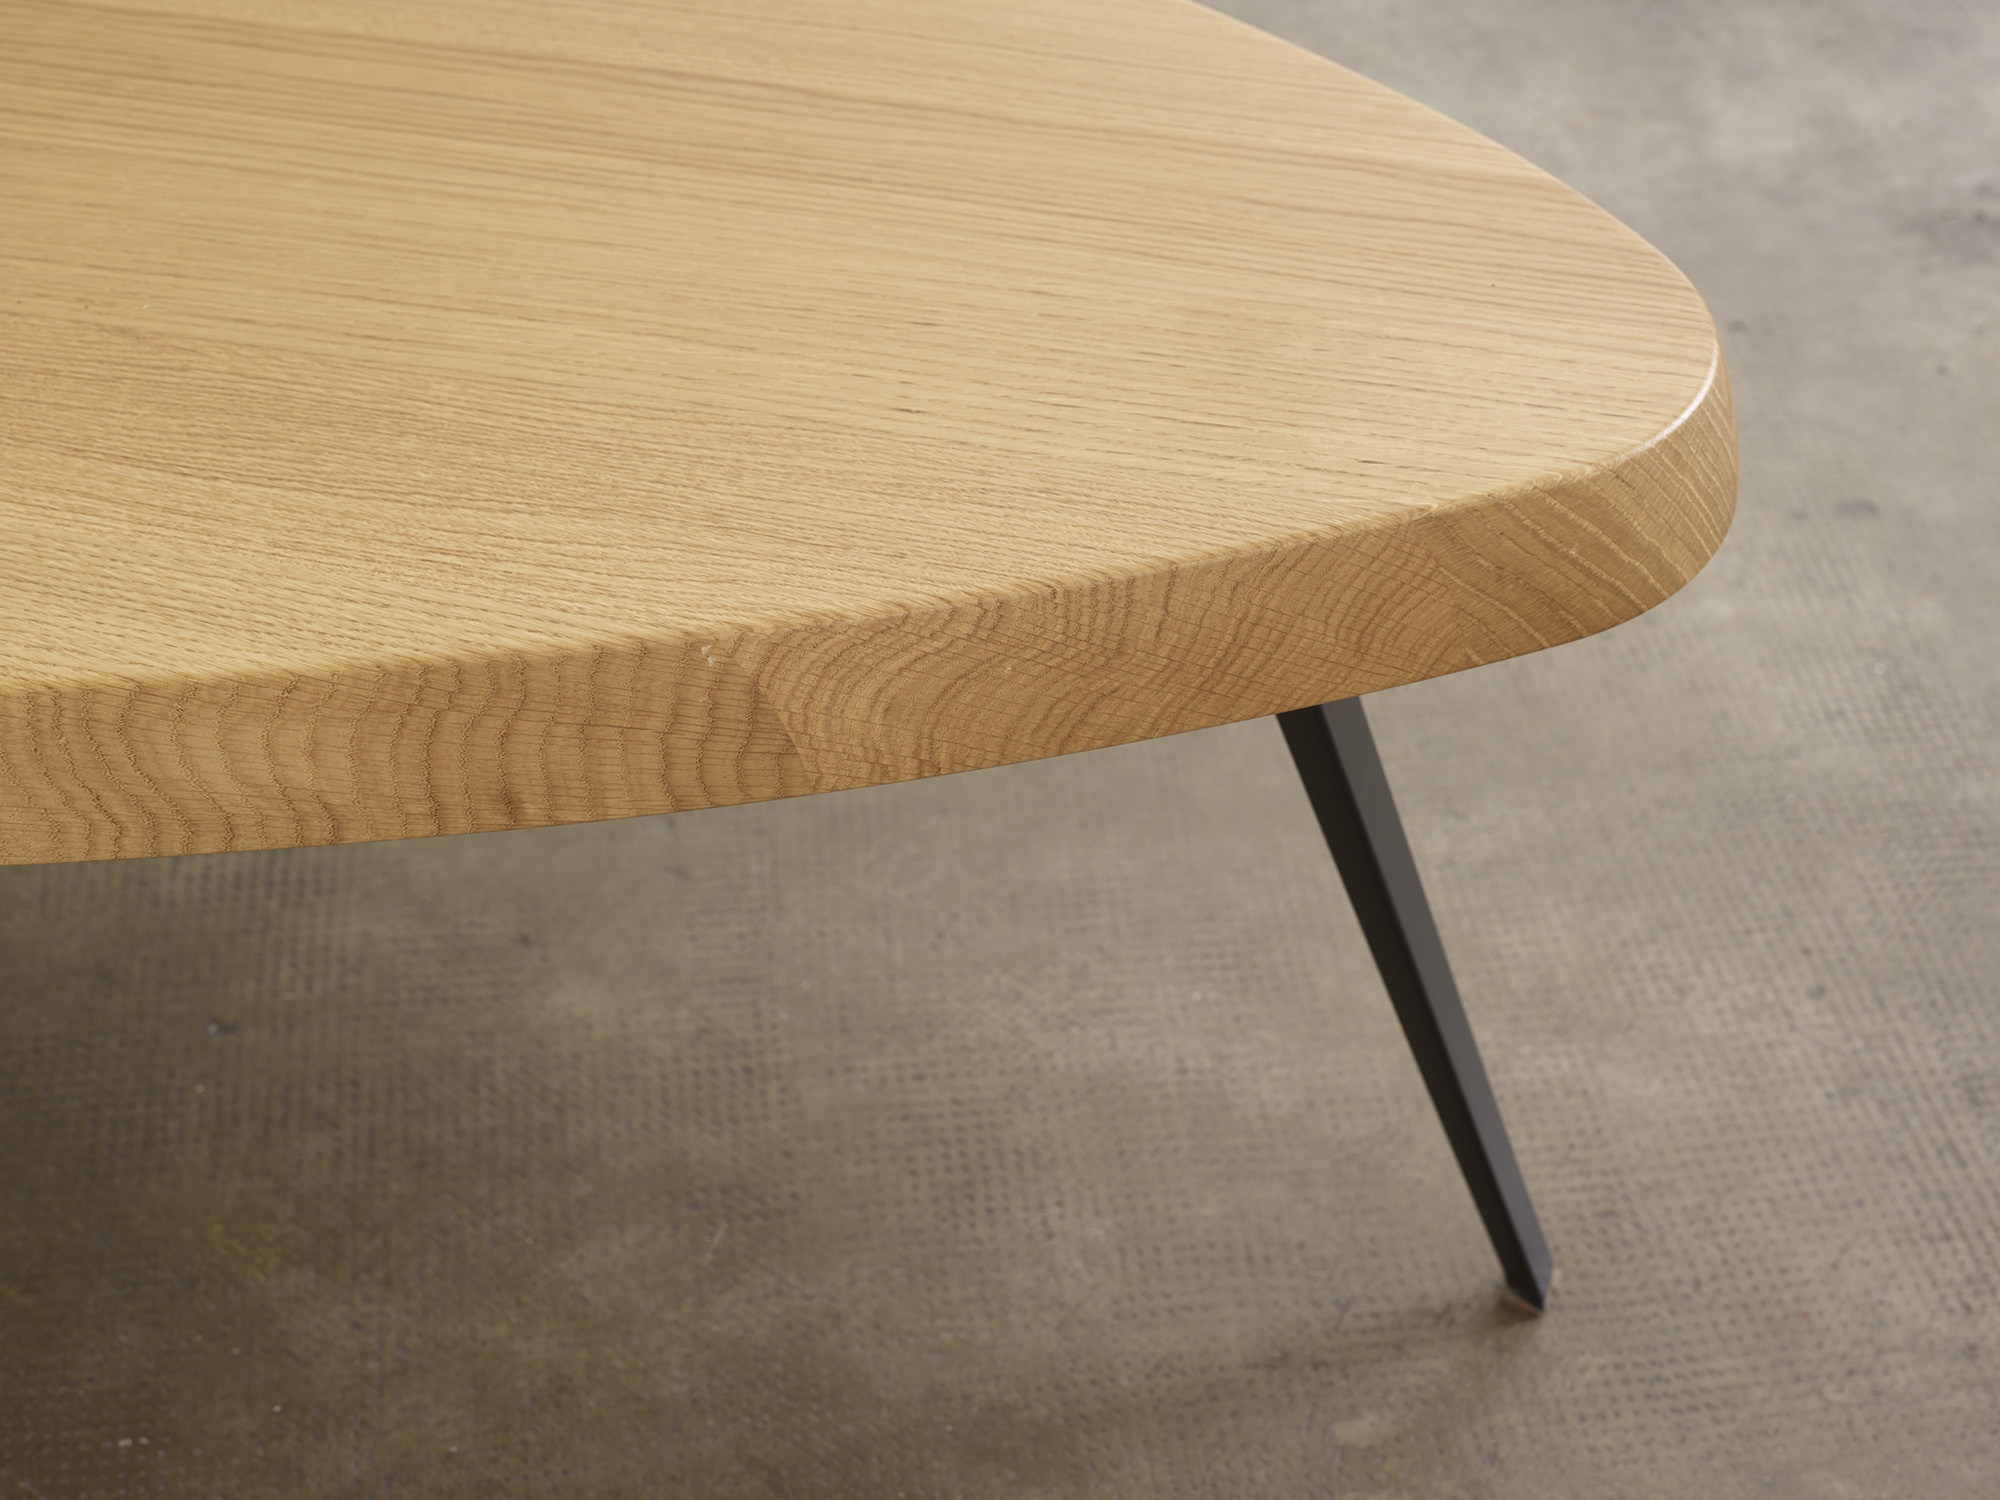 table-basse-527-de-charlotte-perriand-ed-cassina-image-05